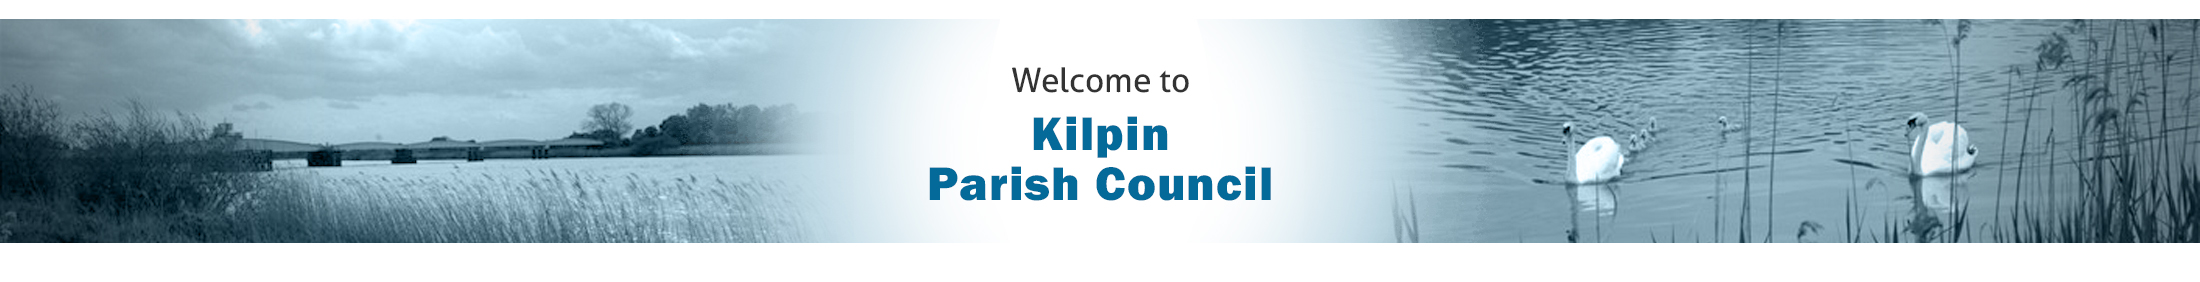 Header Image for Kilpin Parish Council